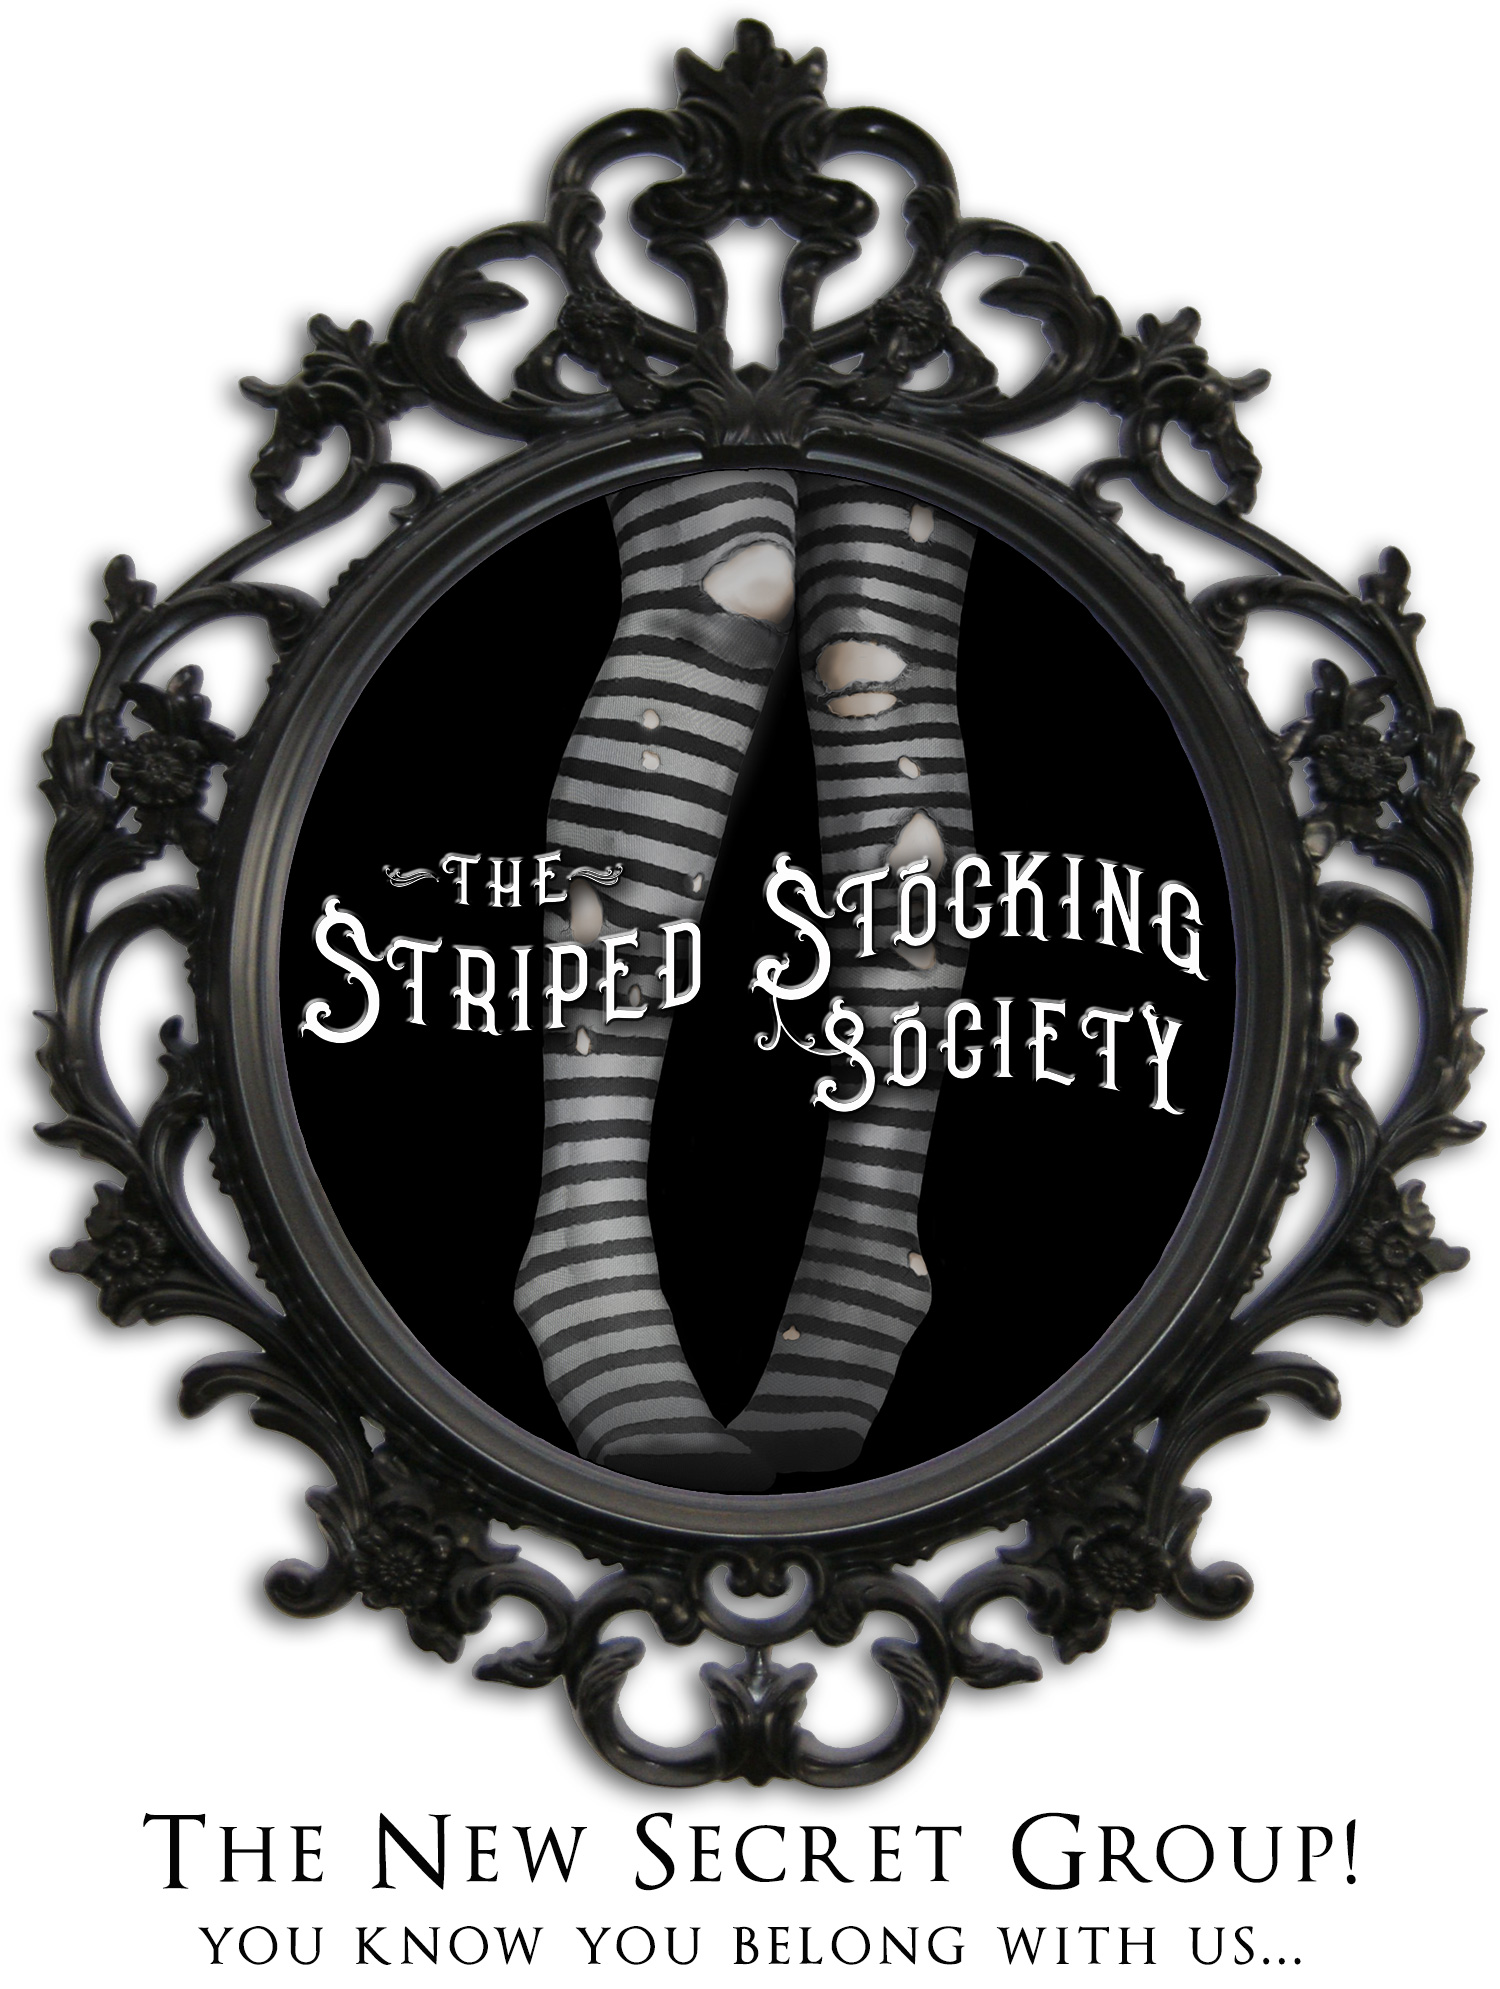 The Striped Stocking Society